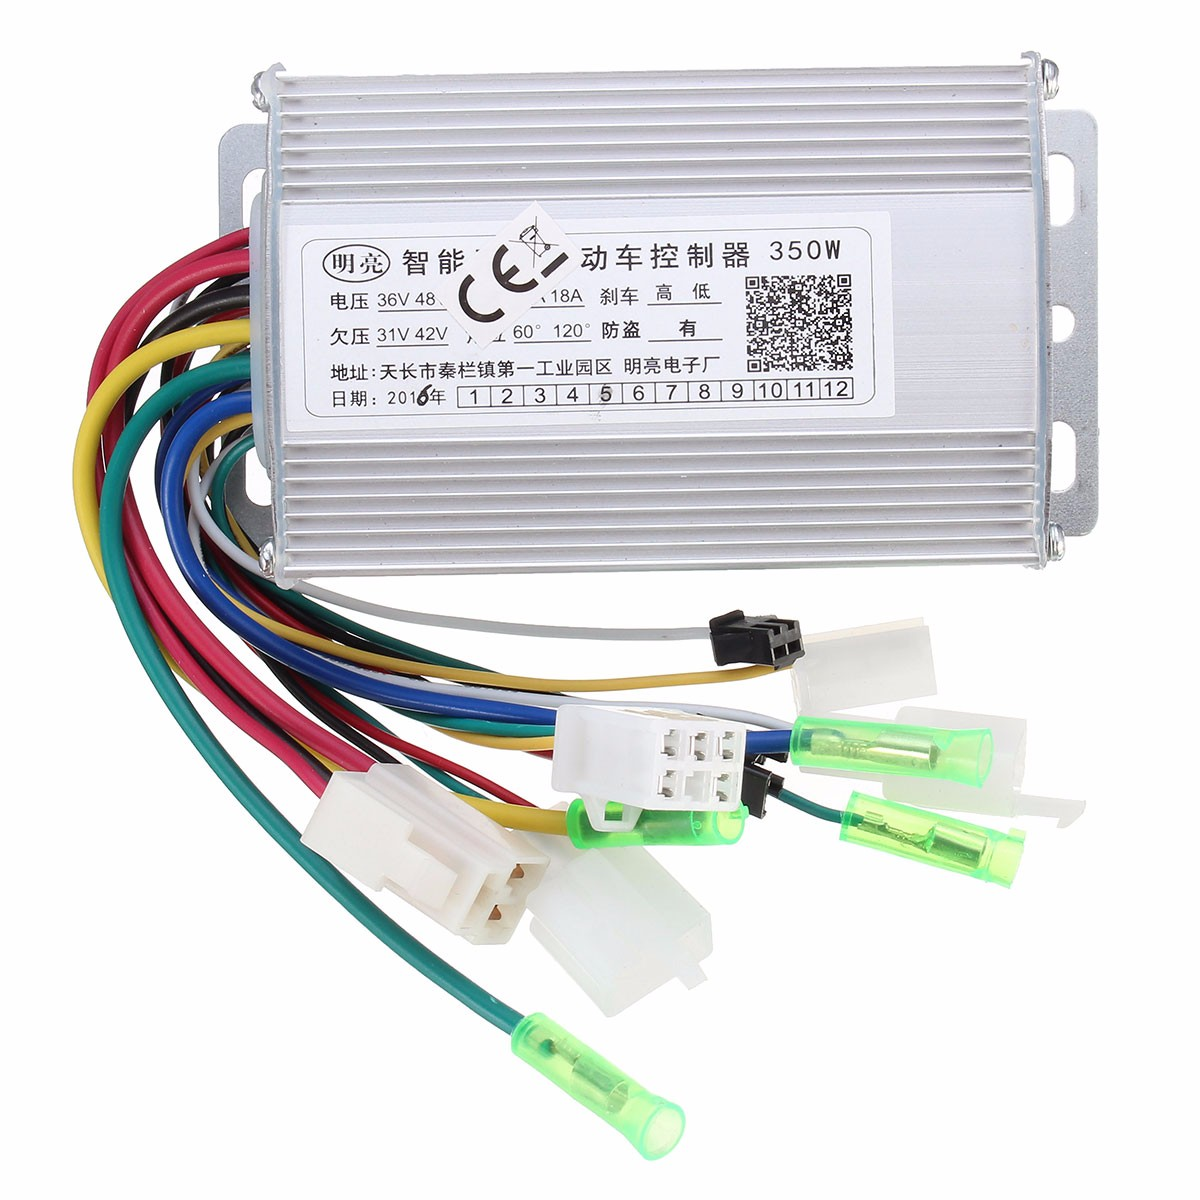 350W 36V/48V Brushless Controller For Scooter E- bike With/Witho